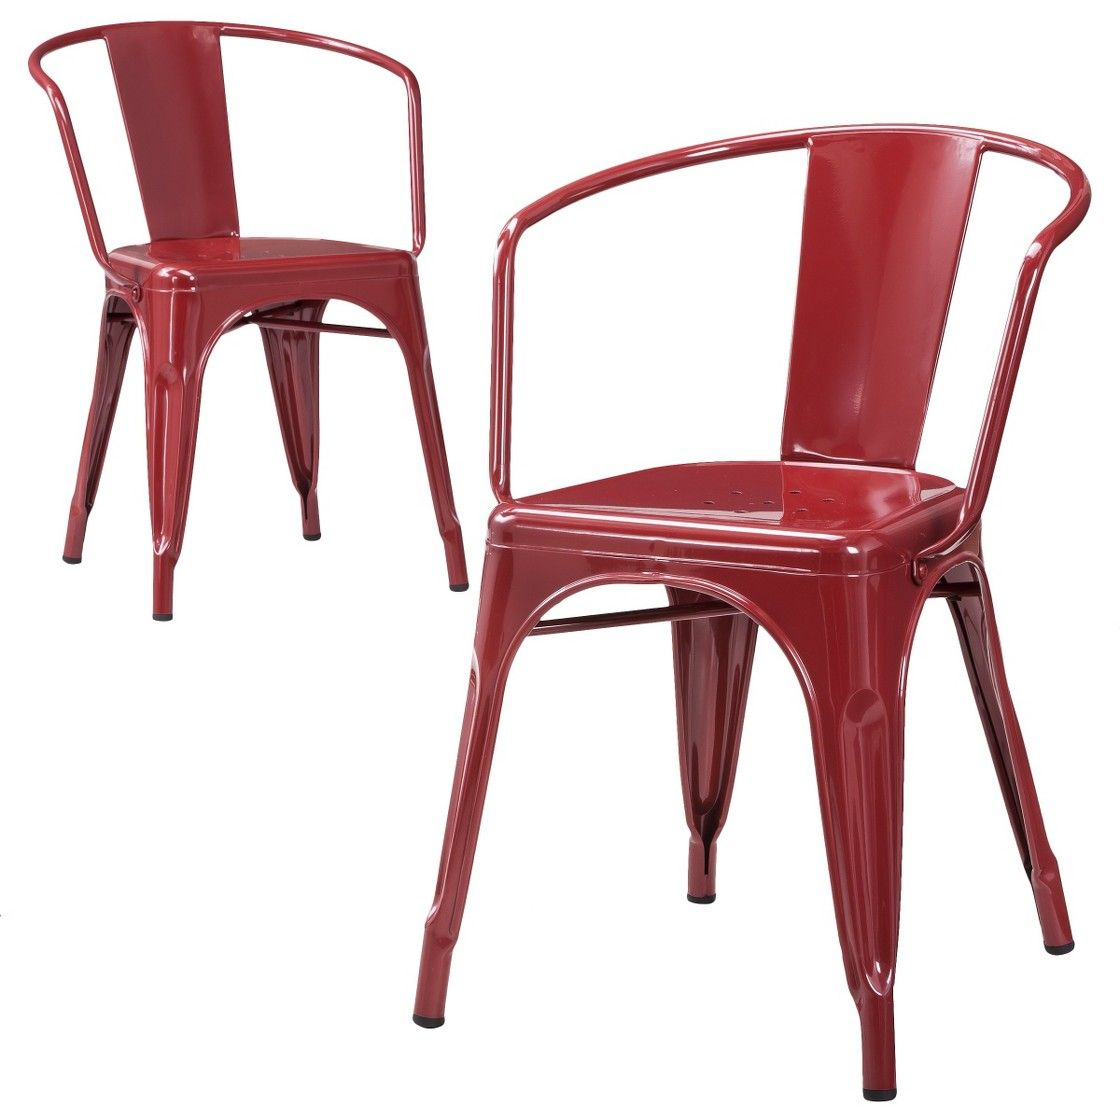 Carlisle Metal Dining Chair Threshold Metal Dining Chairs Brown Dining Chairs Colored Dining Chairs